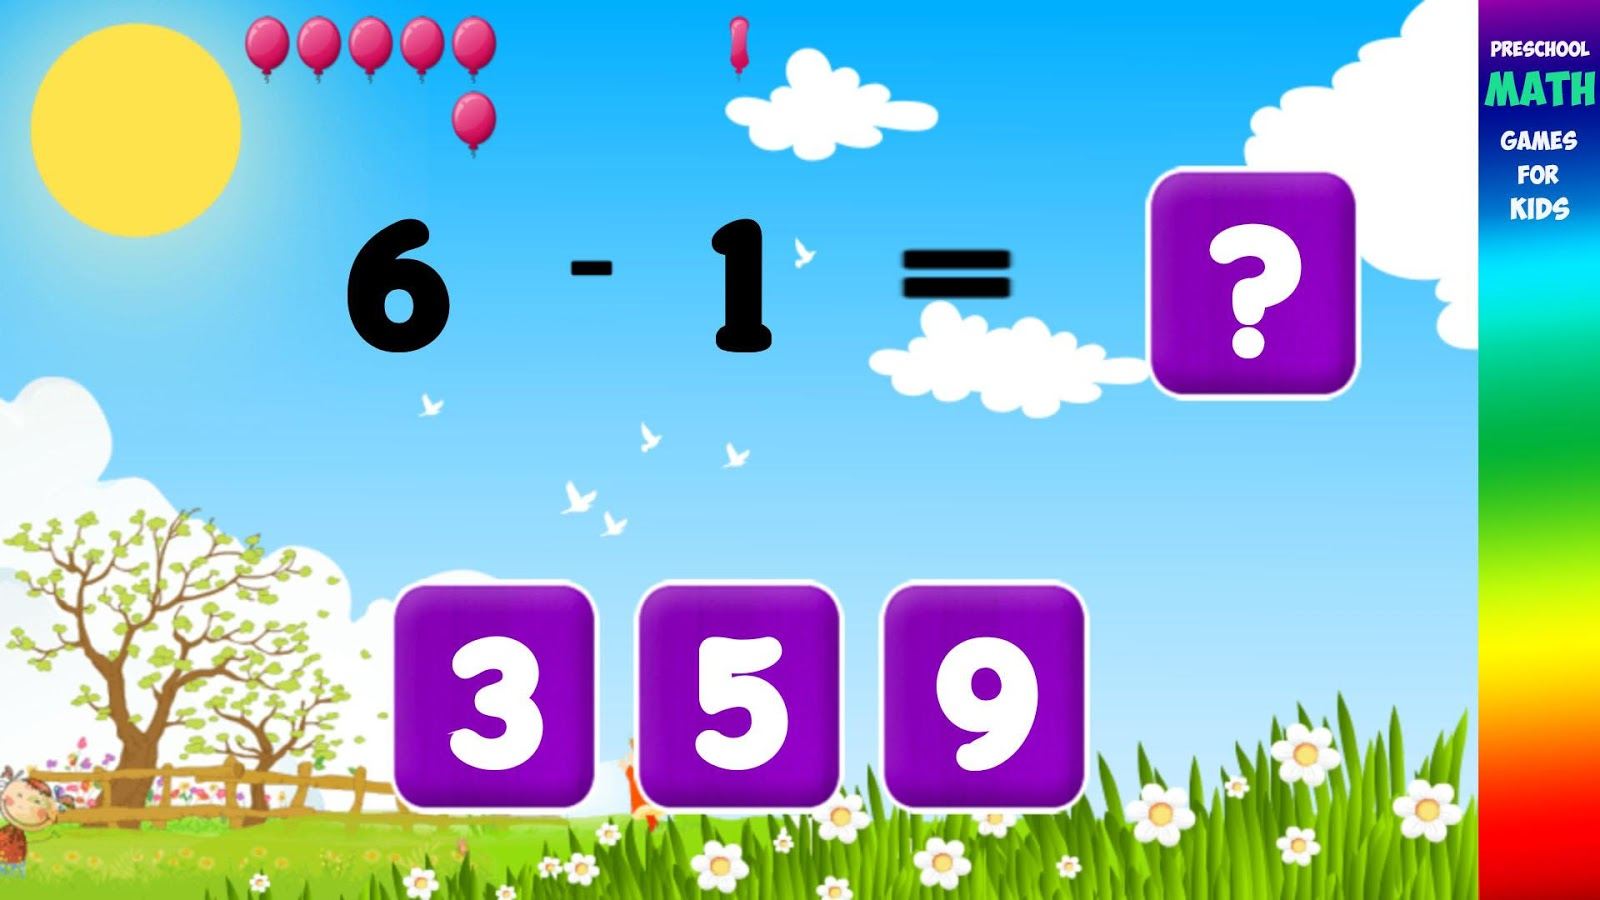 Preschool Math Games Fun Pro - Android Apps on Google Play